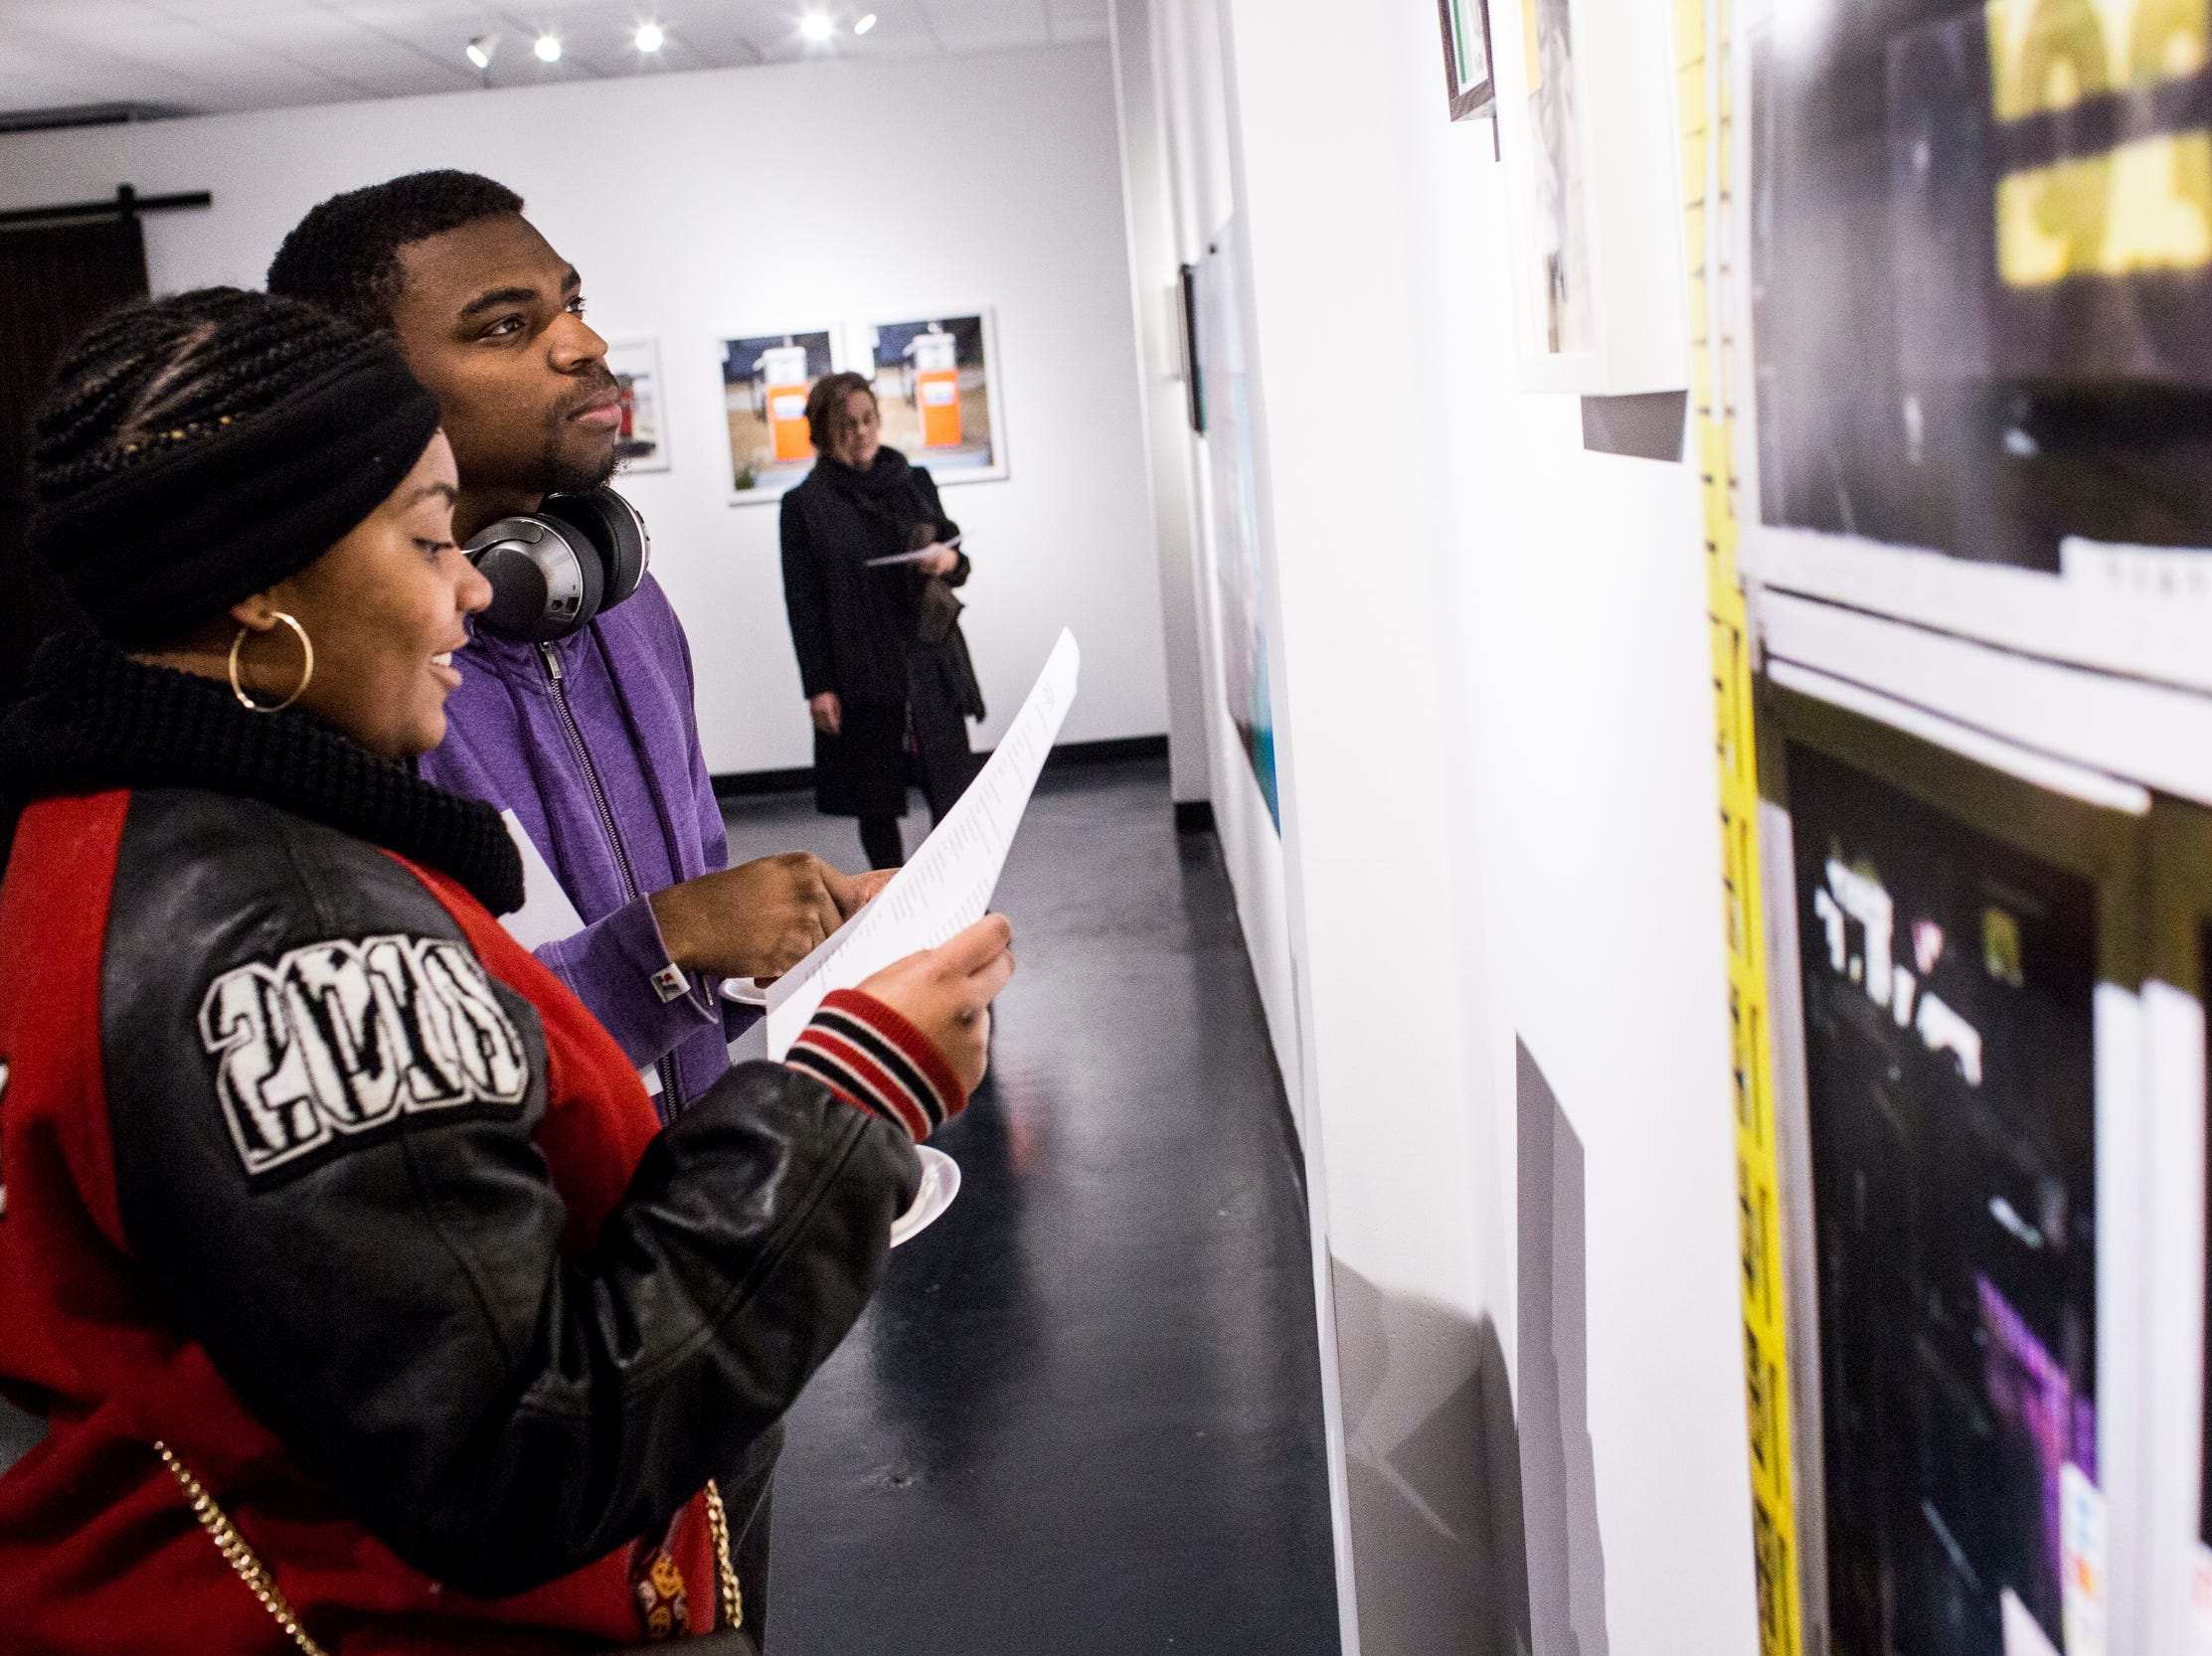 February 08, 2019 - Cheryiah Hill, left, and Caleb Stokes, right, look at work during the PHTGRPHS show featuring work by Lester Merriweather and Lawrence Matthews at The CMPLX. The CMPLX, a gallery, office and work space for The Collective, is located at 2234 Lamar Ave. in the Lamar Airways Shopping Center in Orange Mound.